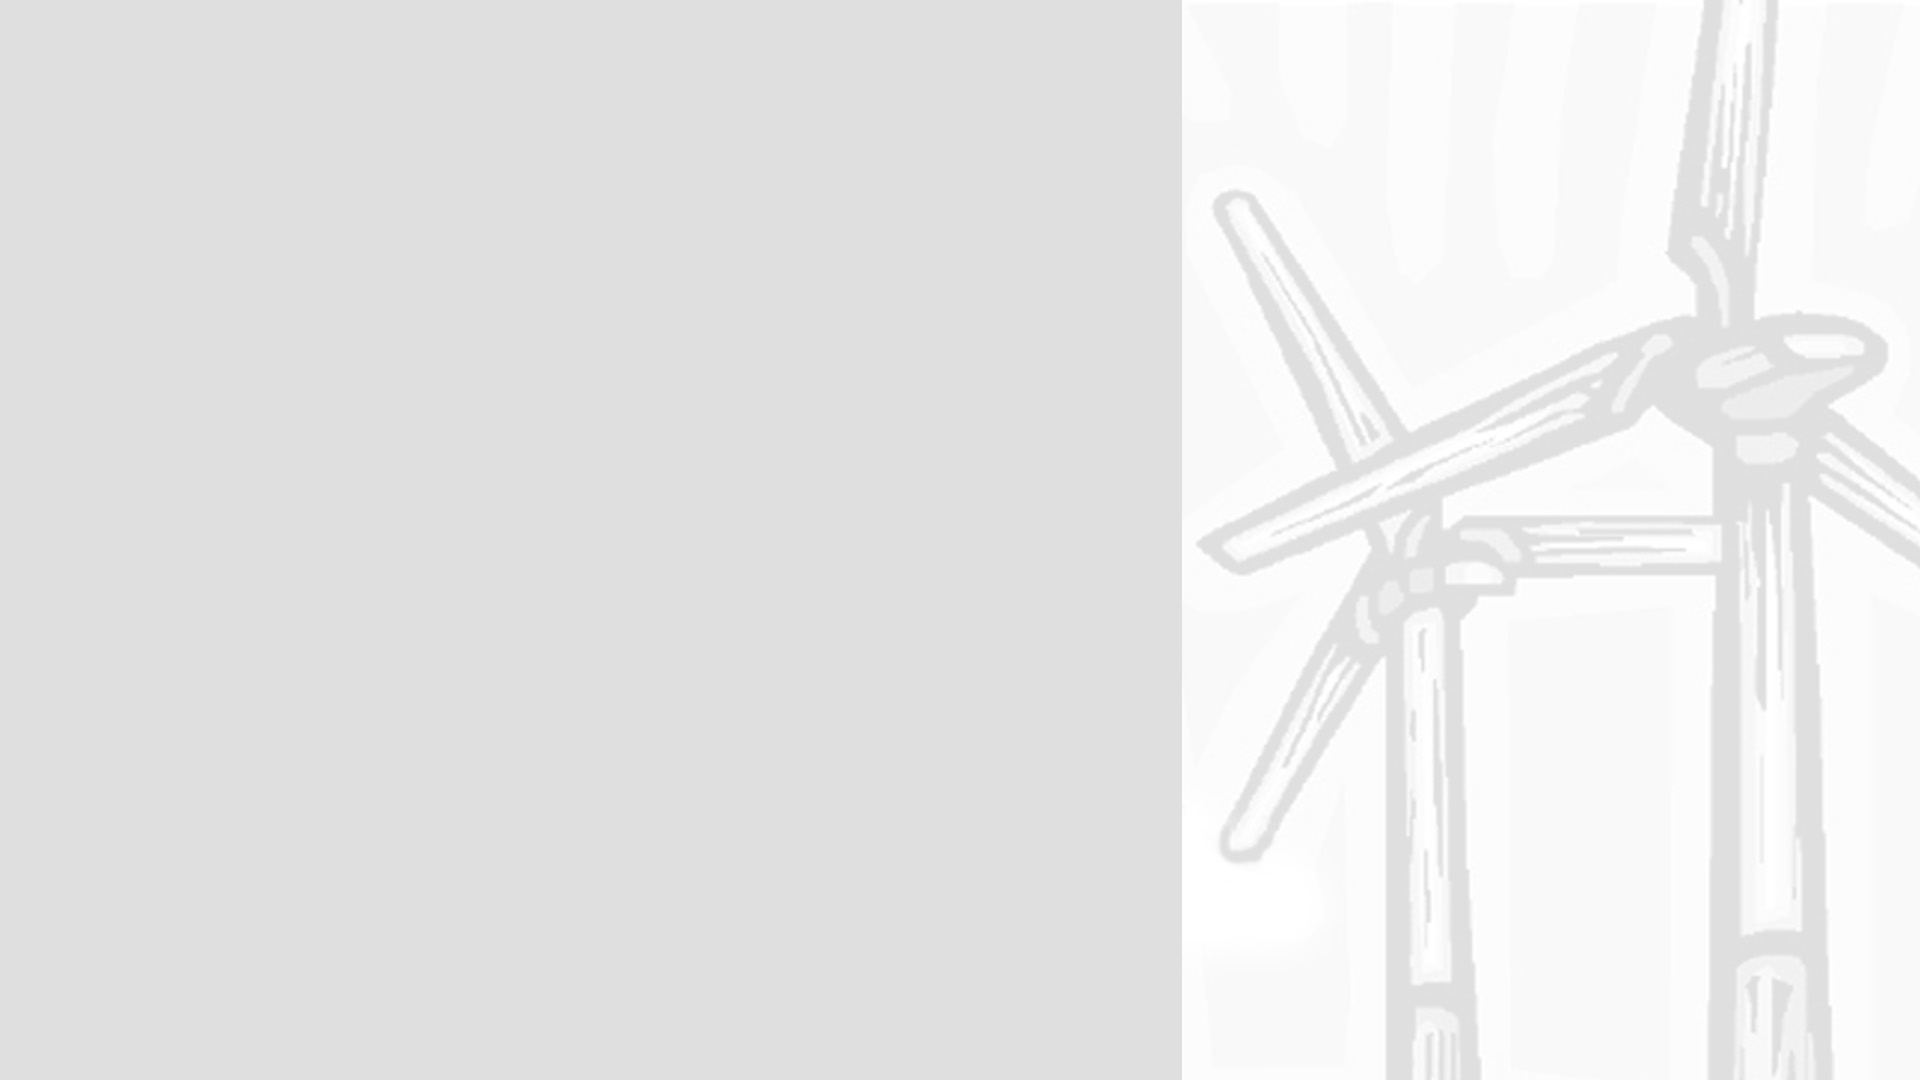 Turbines Grey PPT Backgrounds